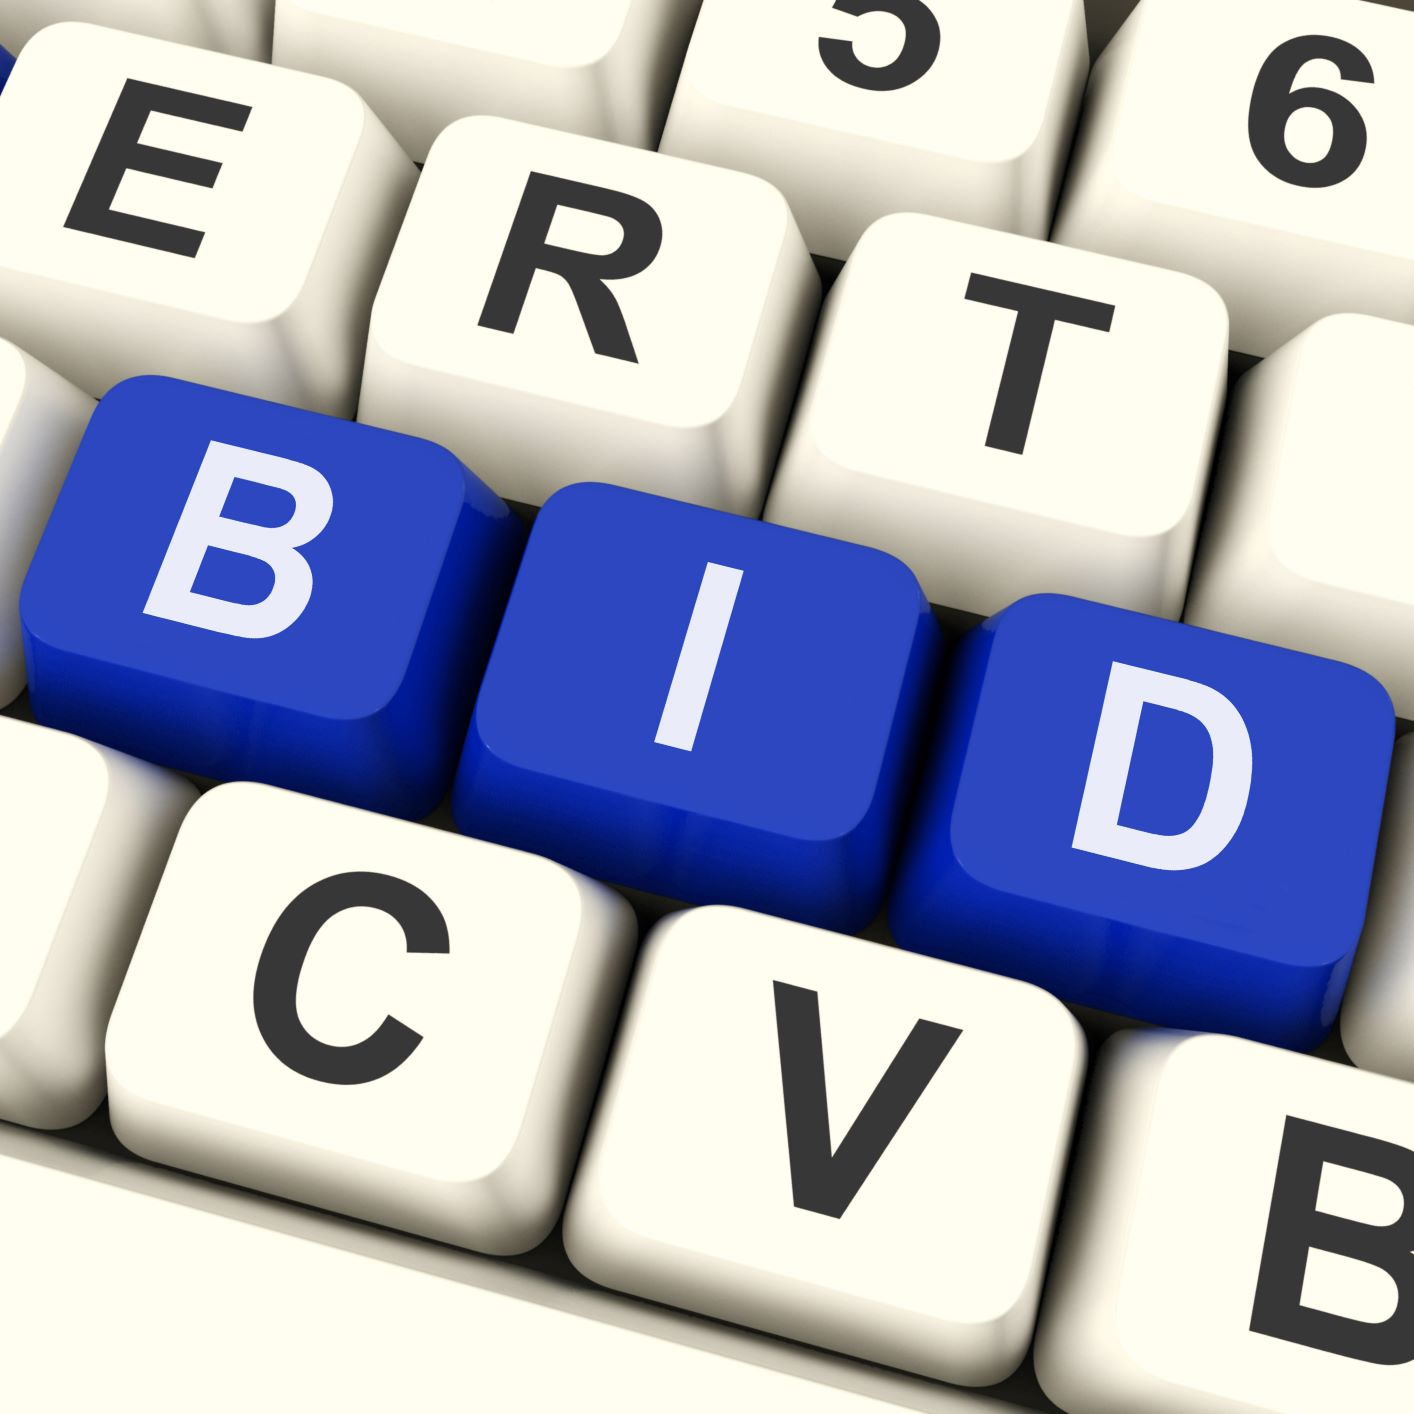 Become Prequalified to Bid on Police or Fire HQ Projects